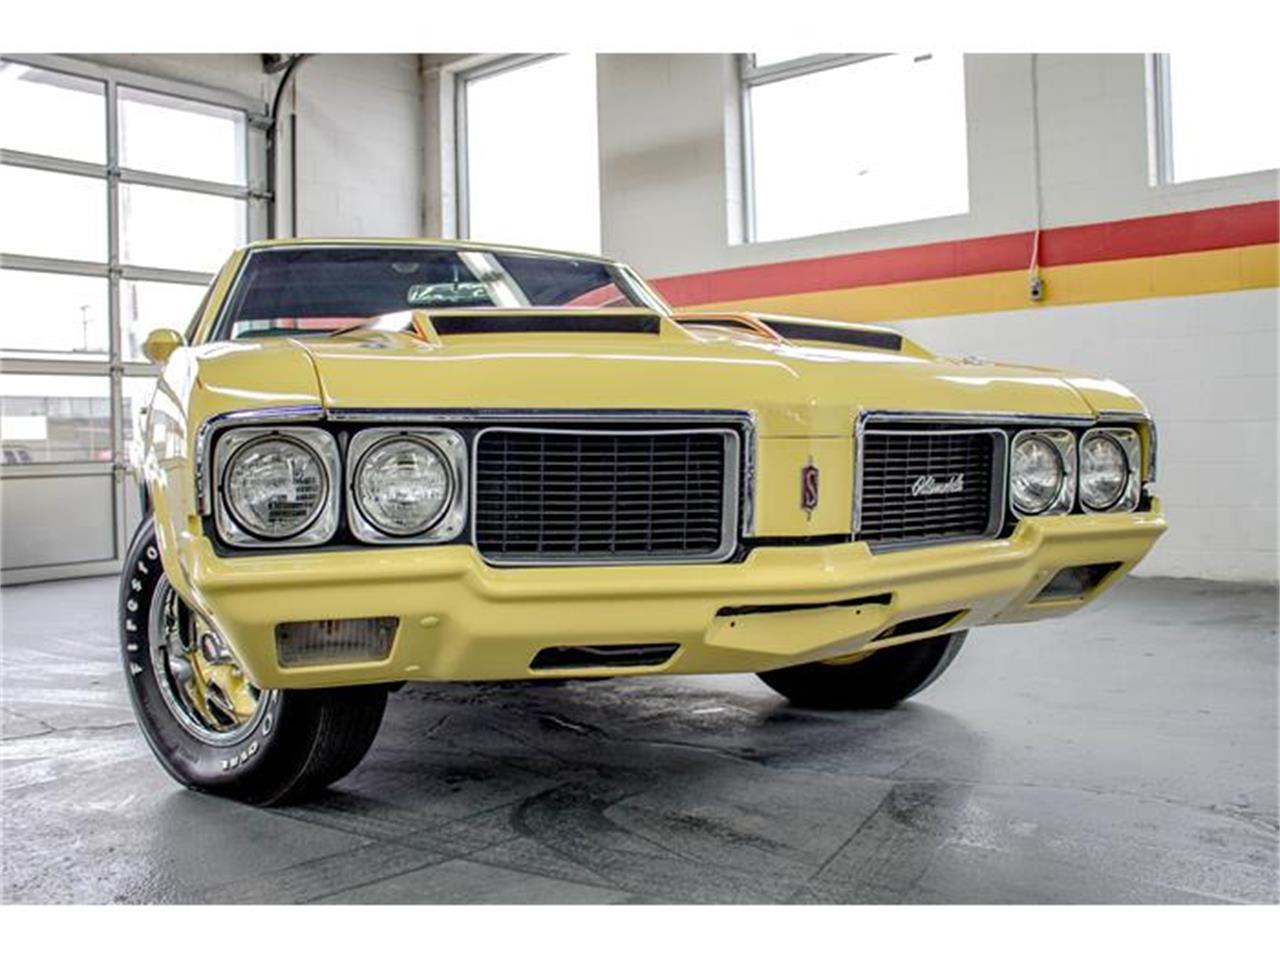 Large Picture of Classic 1970 Oldsmobile Rallye 350 located in Montreal Quebec - $31,990.00 Offered by John Scotti Classic Cars - GE80